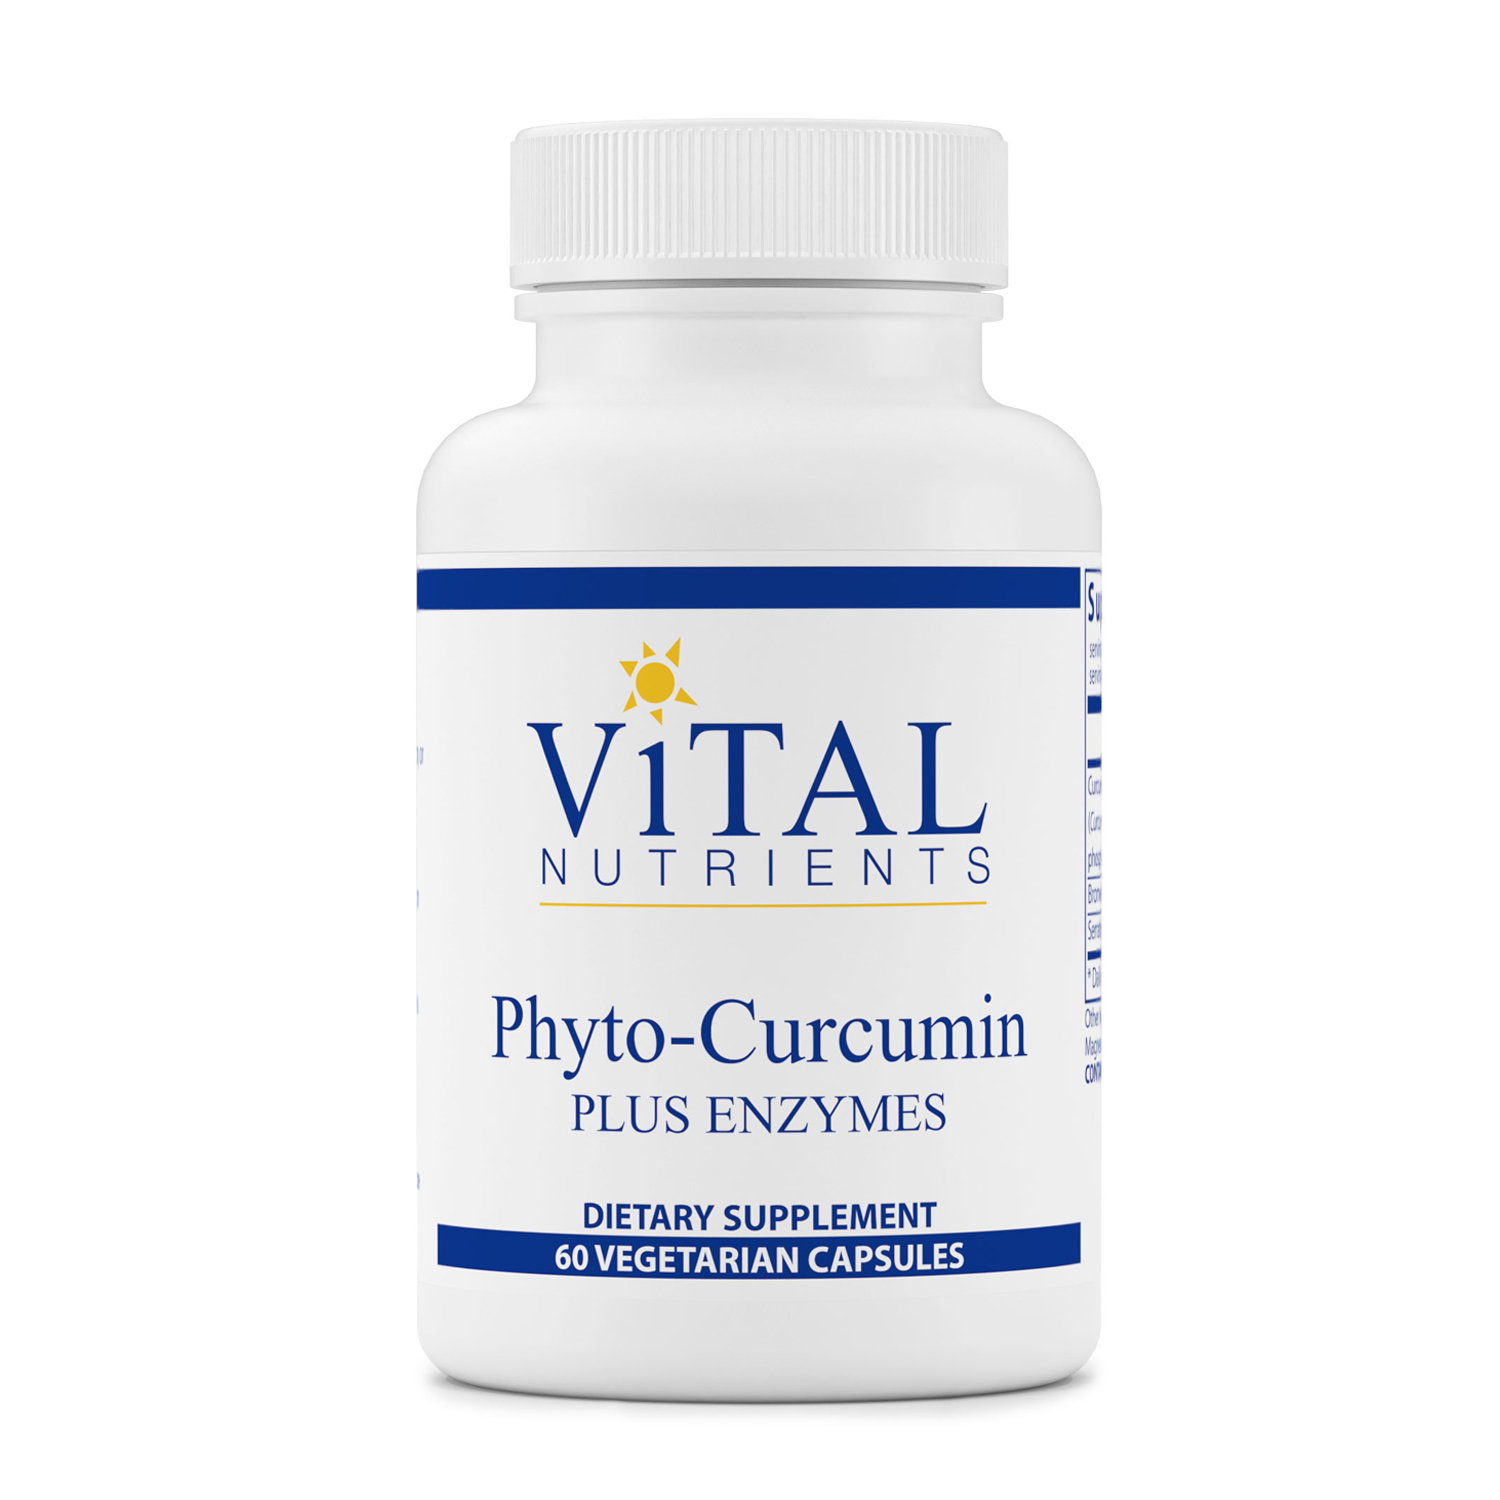 Phyto-Curcumin + Enzymes